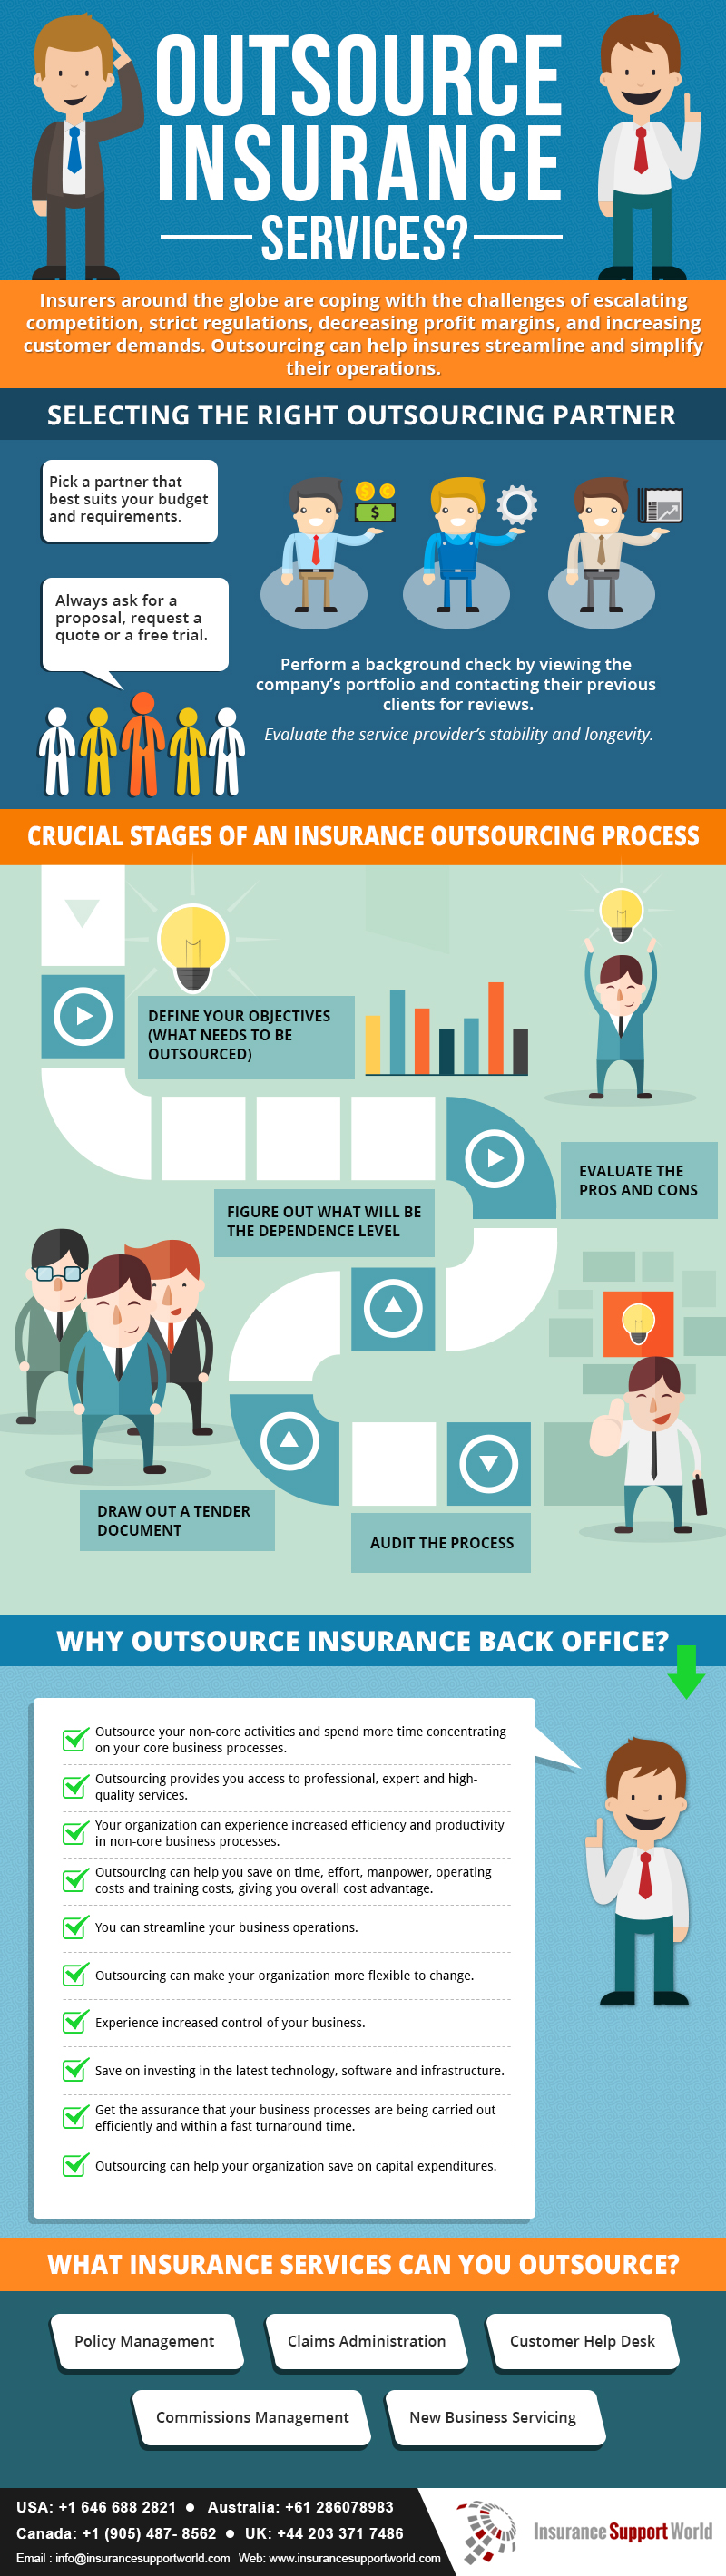 Outsource Insurance Services